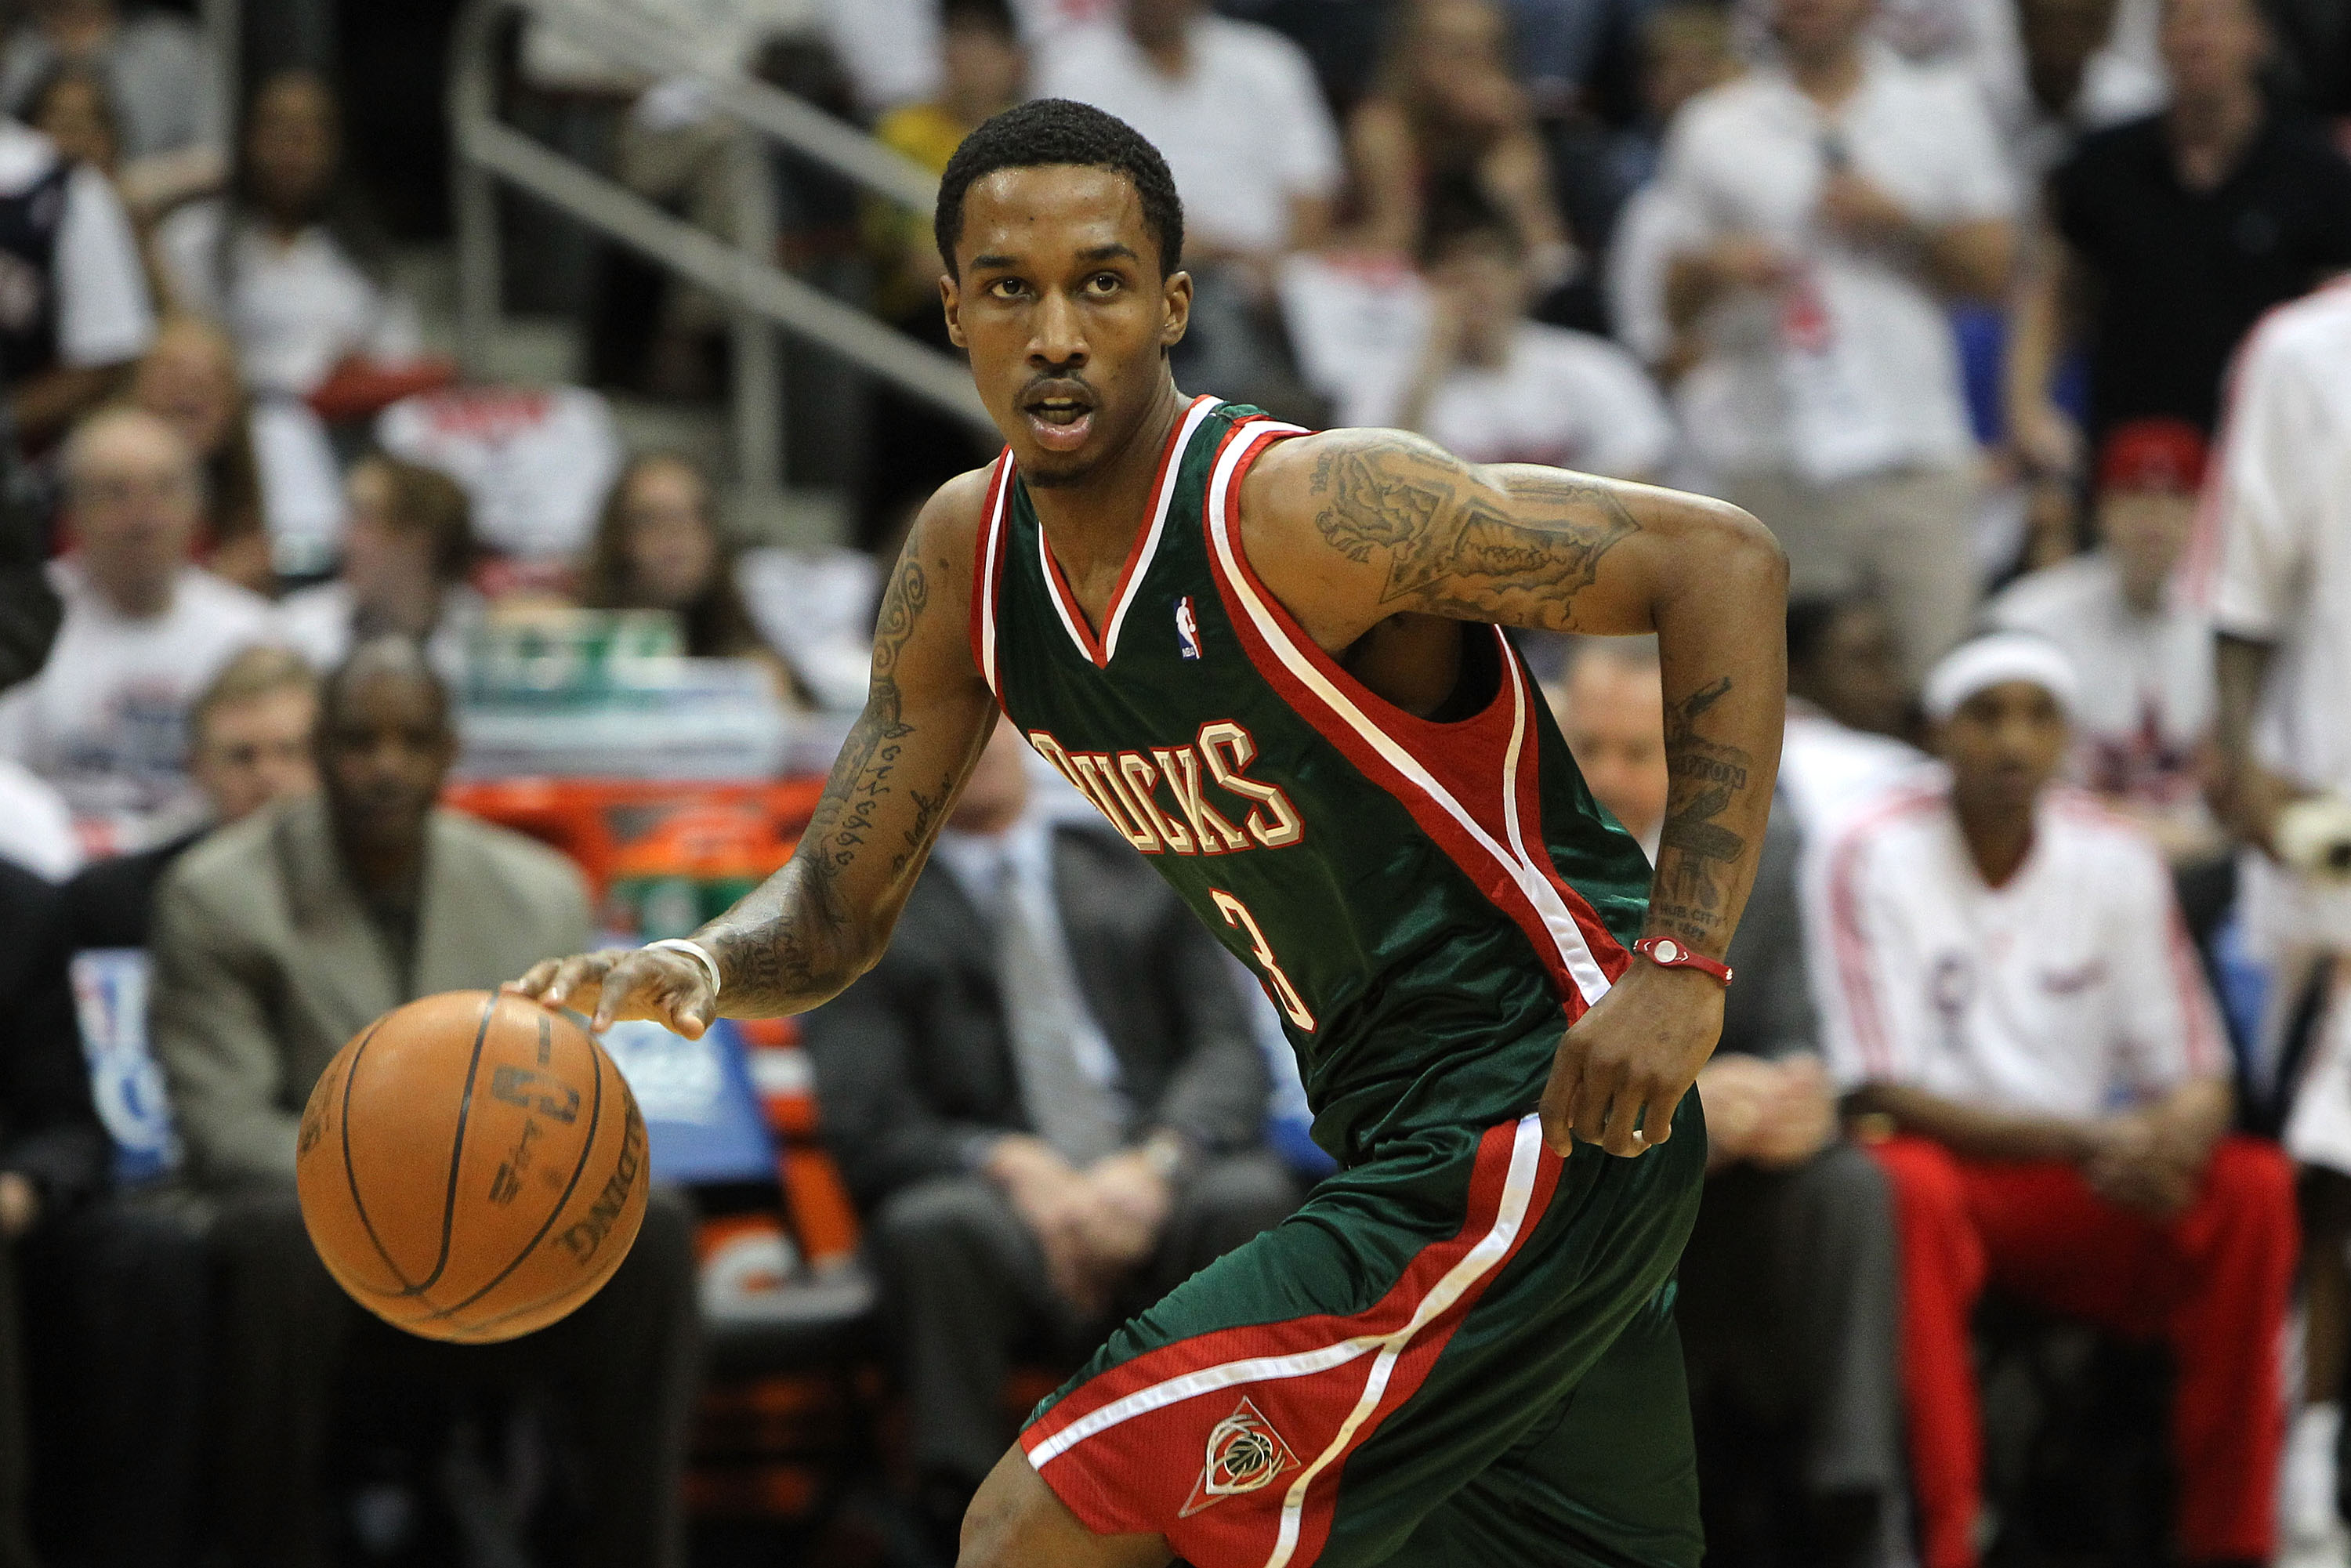 ATLANTA - MAY 2:  Guard Brandon Jennings #3 of the Milwaukee Bucks dribbles with the ball during Game Seven of the Eastern Conference Quarterfinals against the Atlanta Hawks during the 2010 NBA Playoffs at Philips Arena on May 2, 2010 in Atlanta, Georgia.